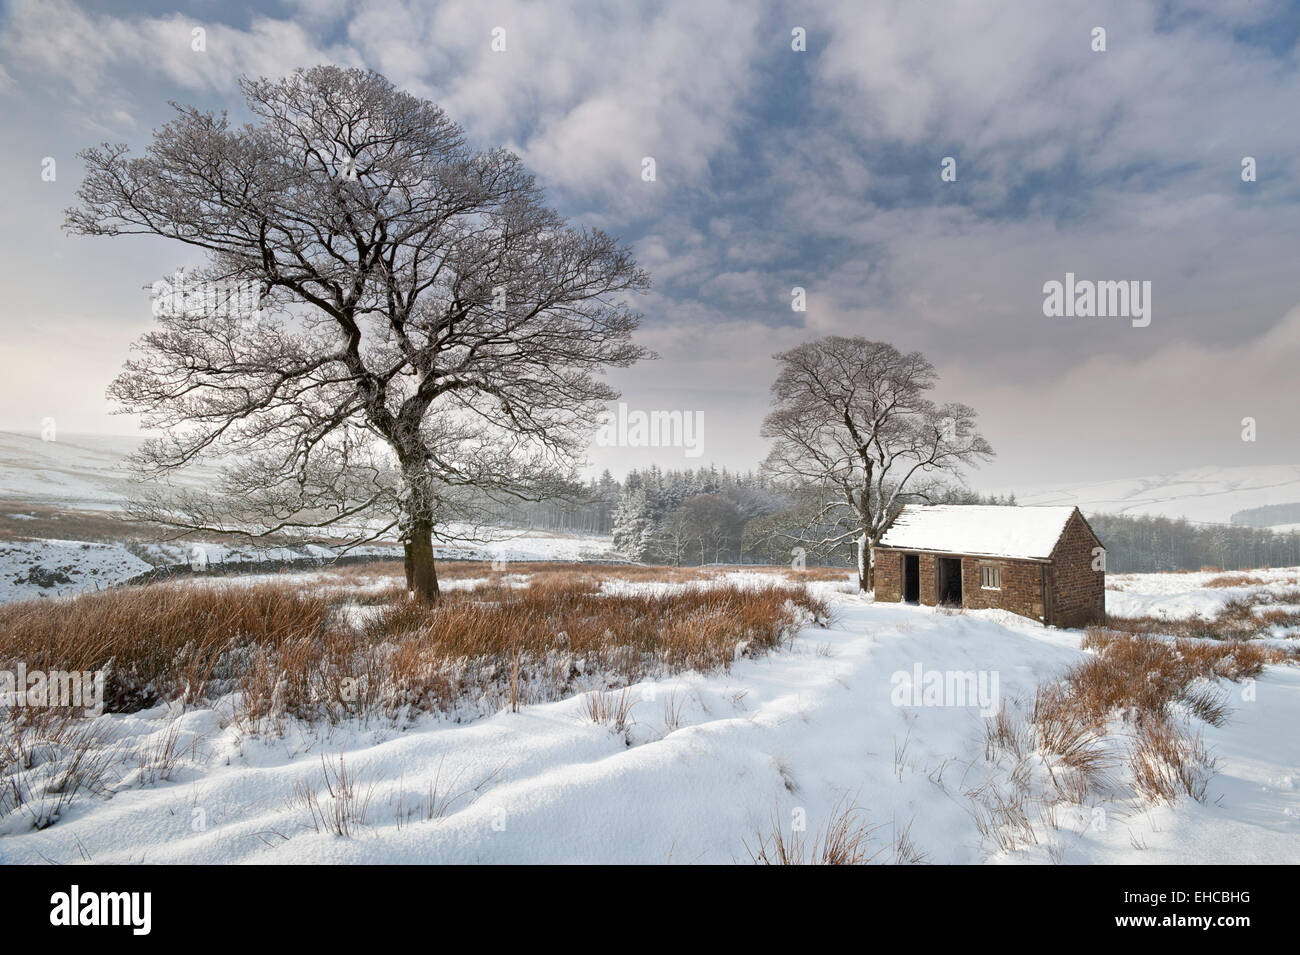 Old Barn in Winter, Near Wildboarclough, Peak District National Park, Cheshire, England, UK - Stock Image